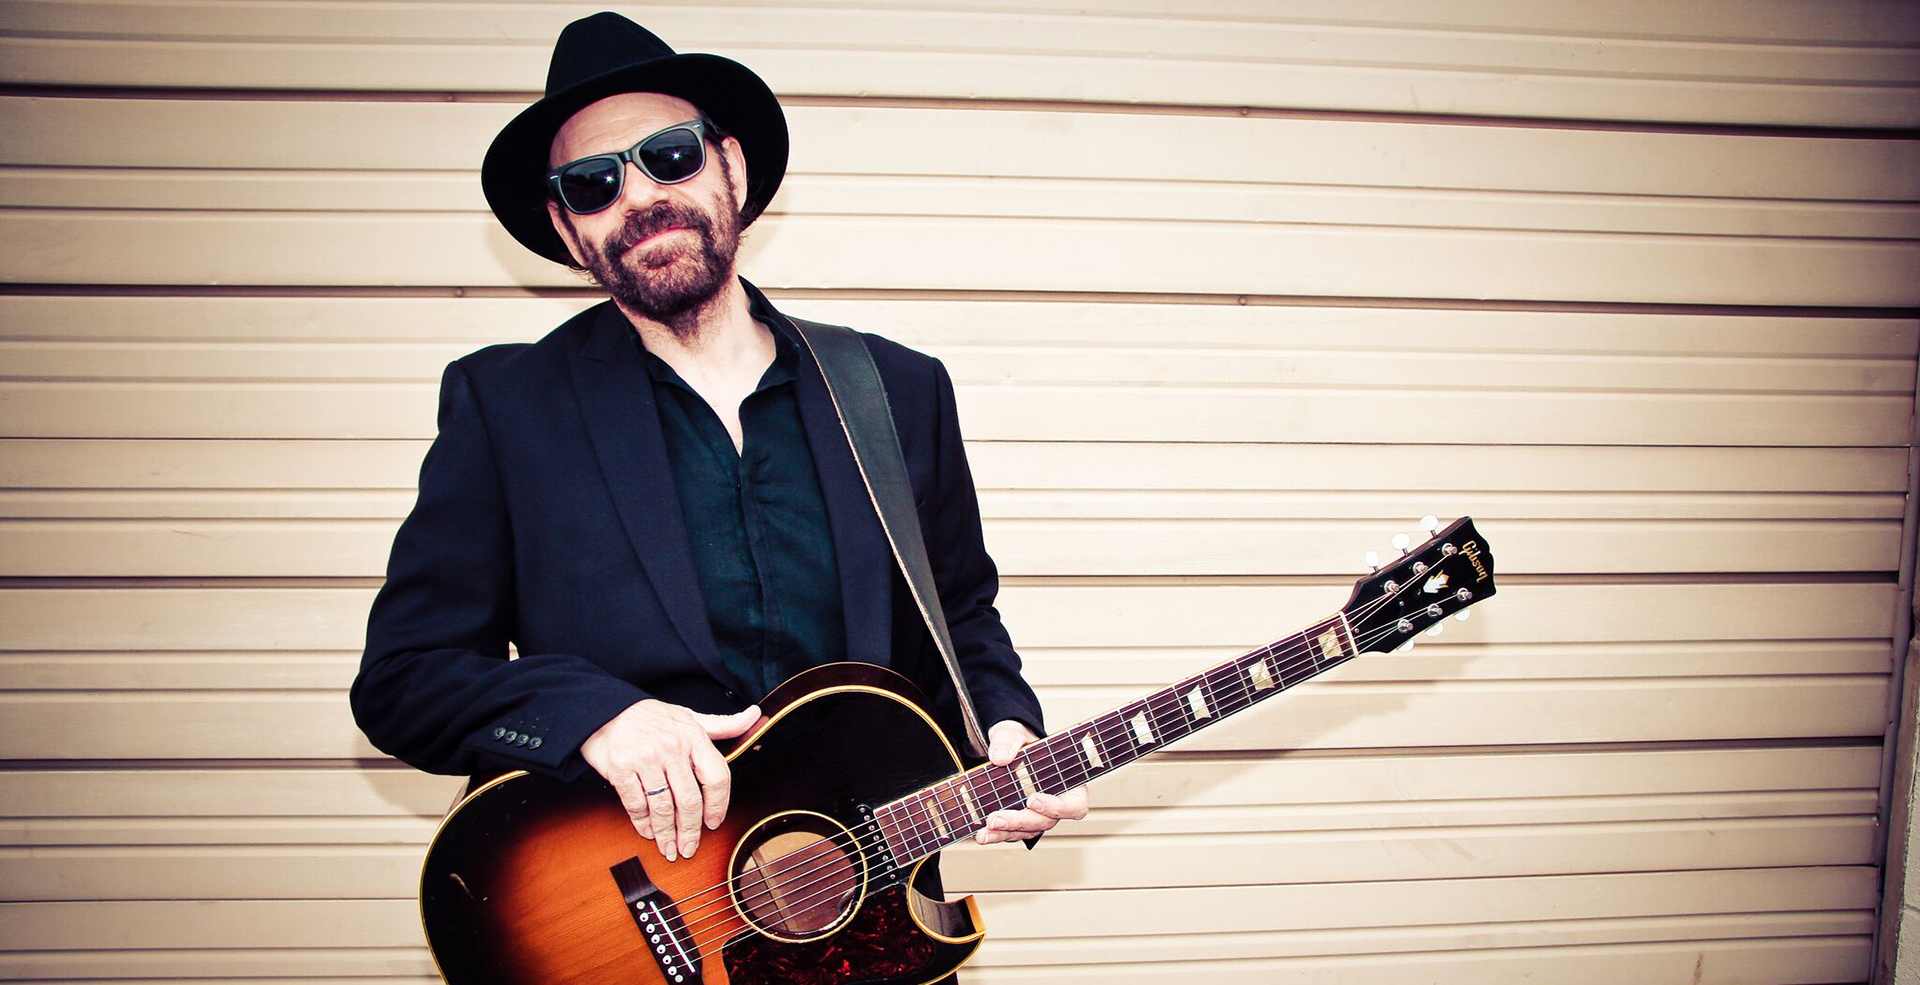 Canadian producer and songwriter Colin Linden earns 2020 Grammy Award